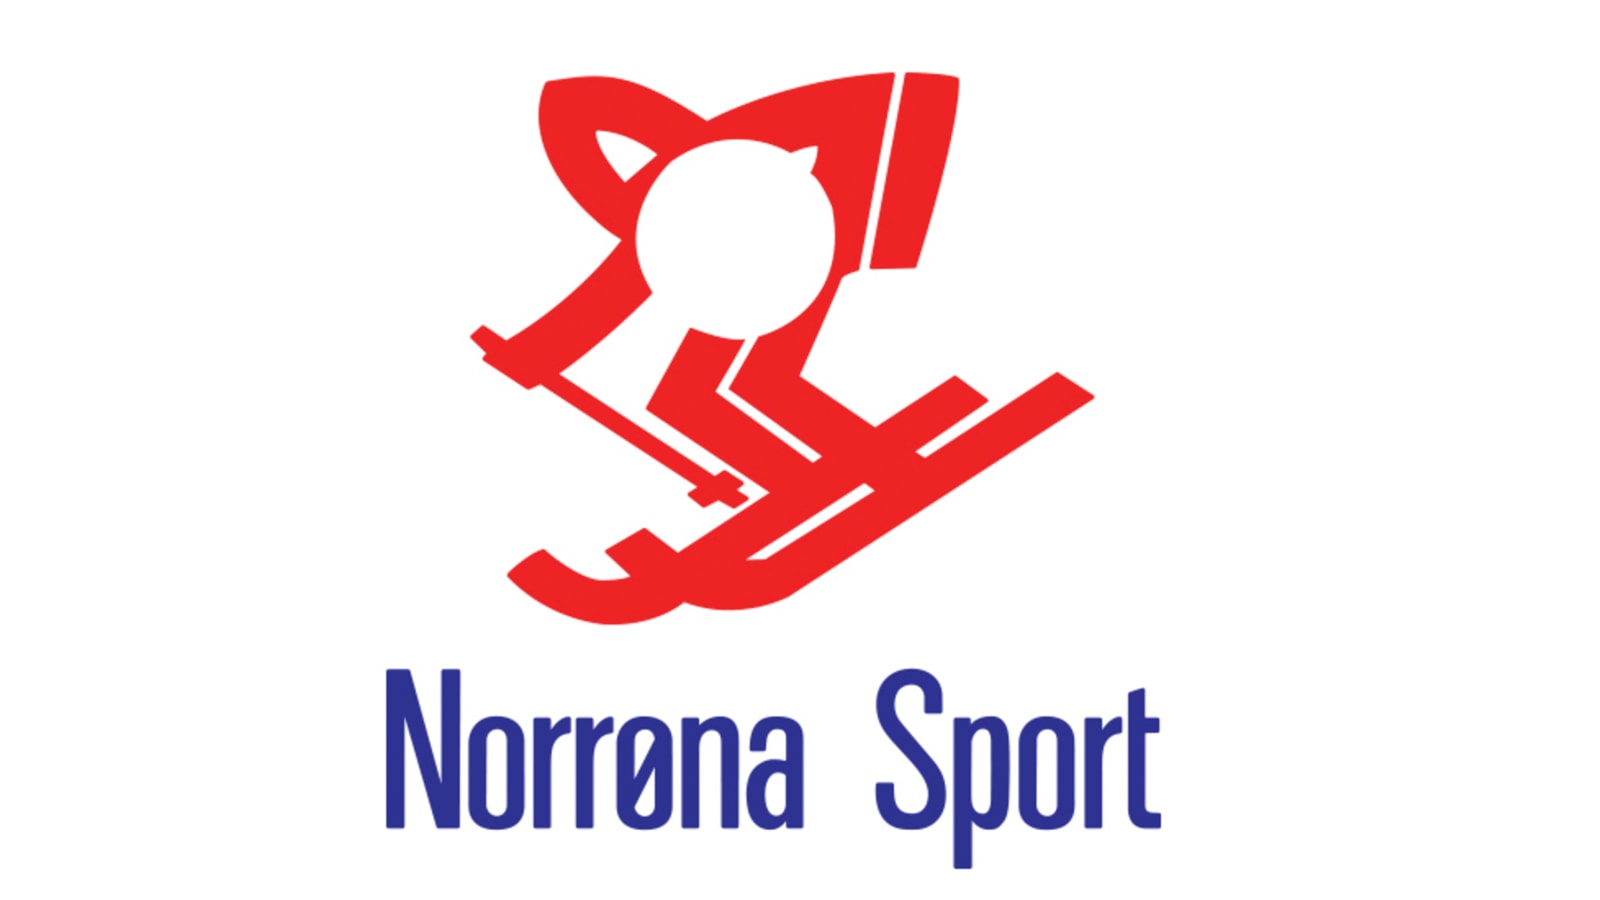 norrona in Sporting Goods | eBay